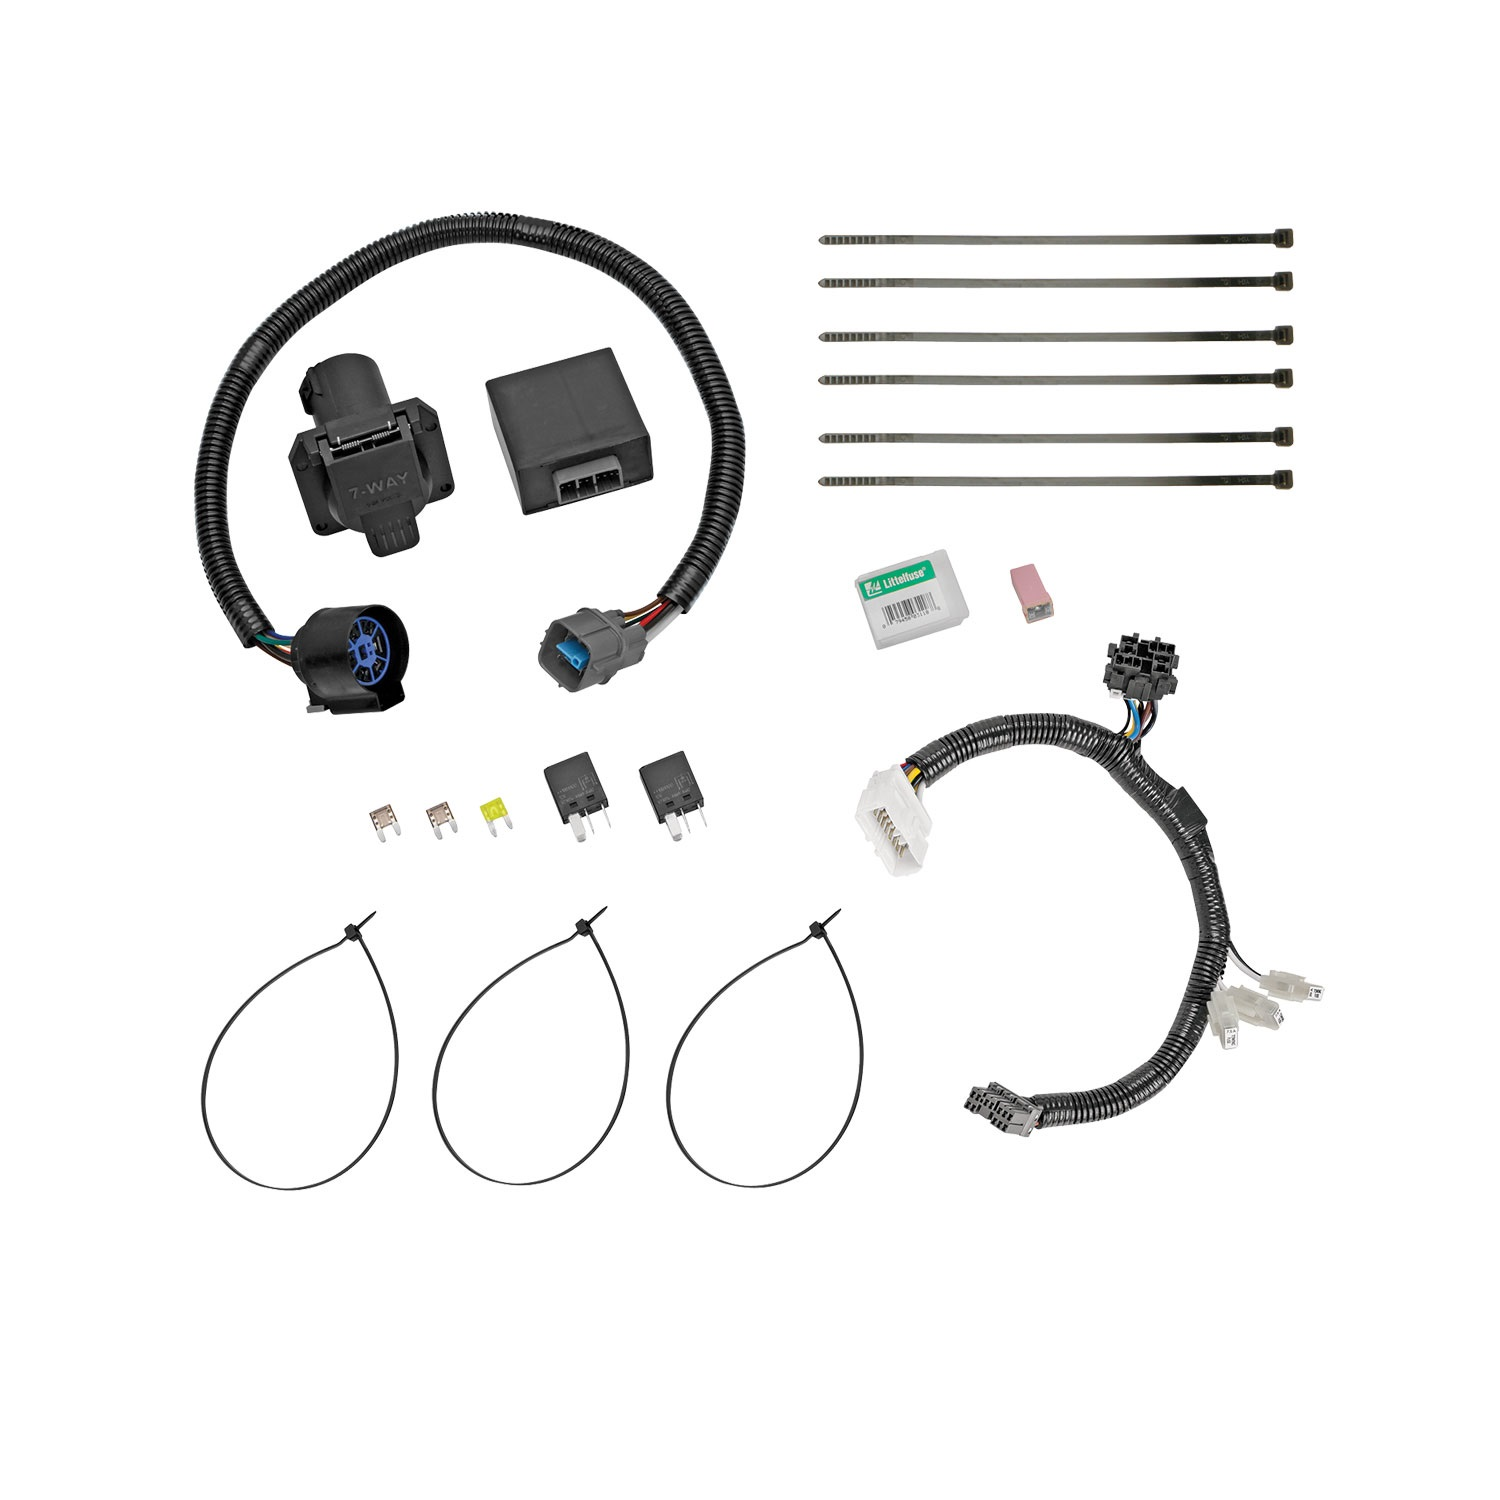 Trailer Wiring Harness For 2015 Honda Pilot Basic Diagram Trailor Wire Enthusiast Diagrams U2022 Rh Rasalibre Co Kit